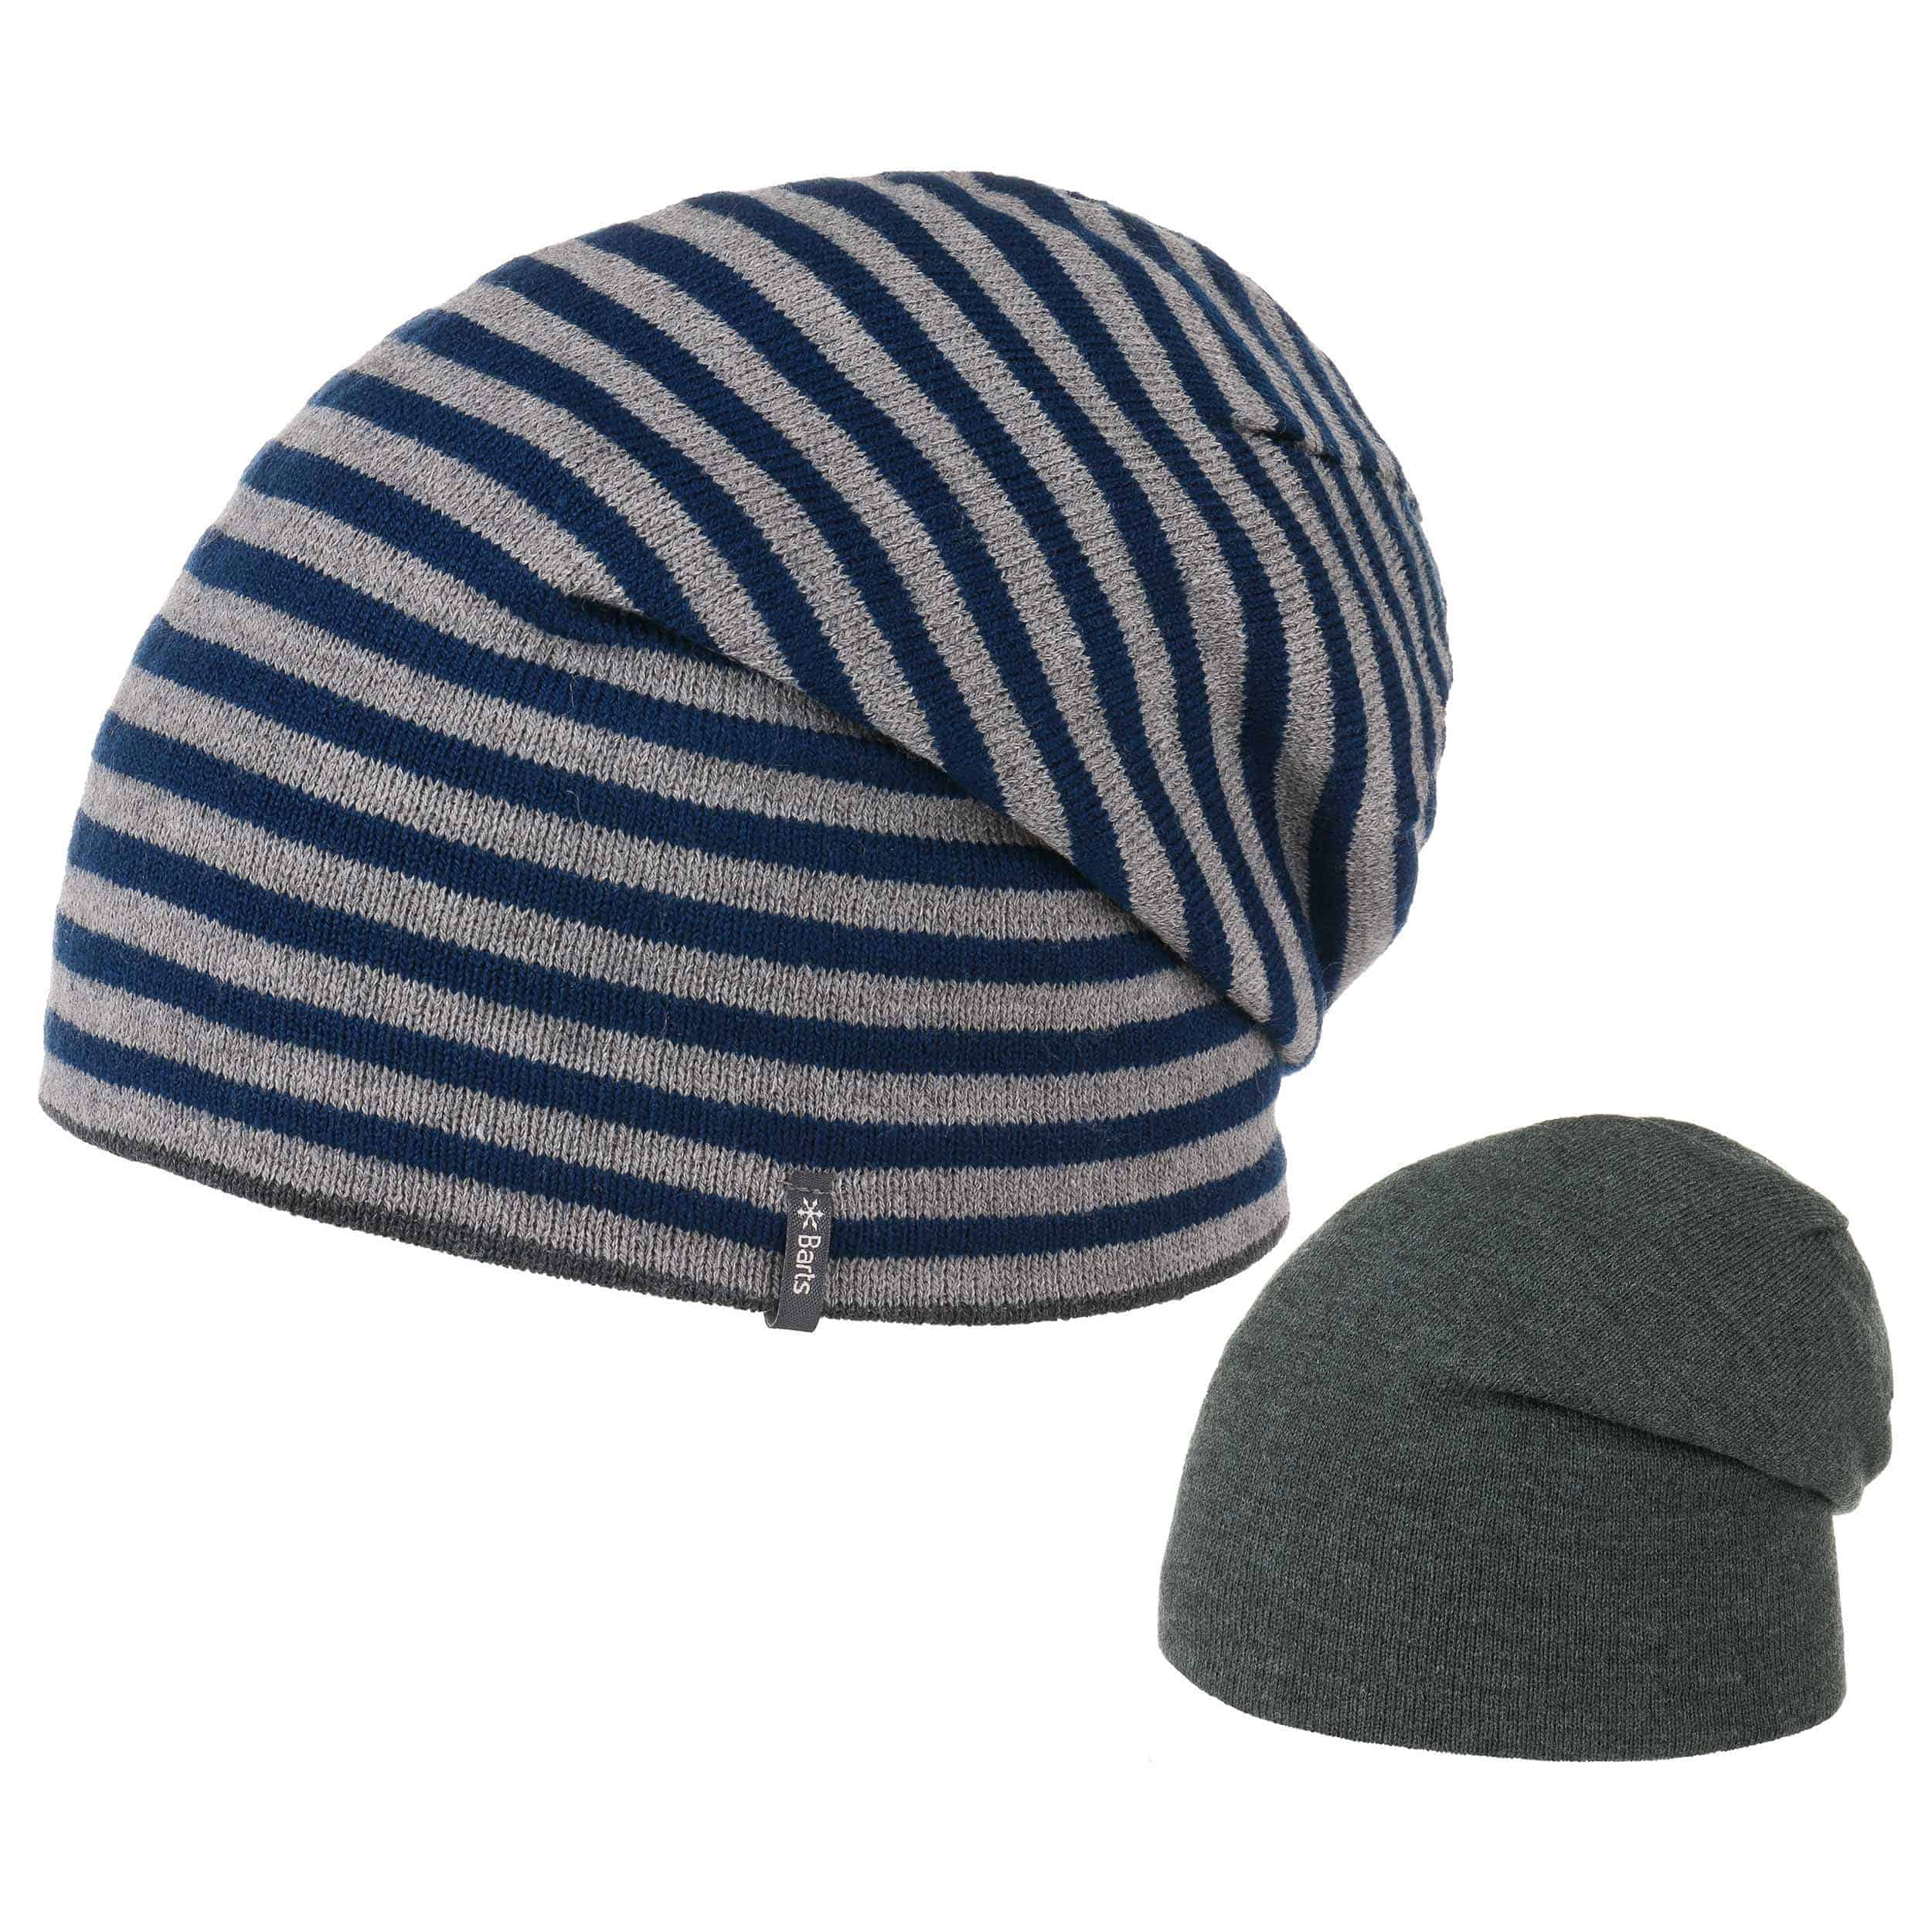 factory authentic new images of shoes for cheap Annular Oversized Beanie by Barts - 17,95 £